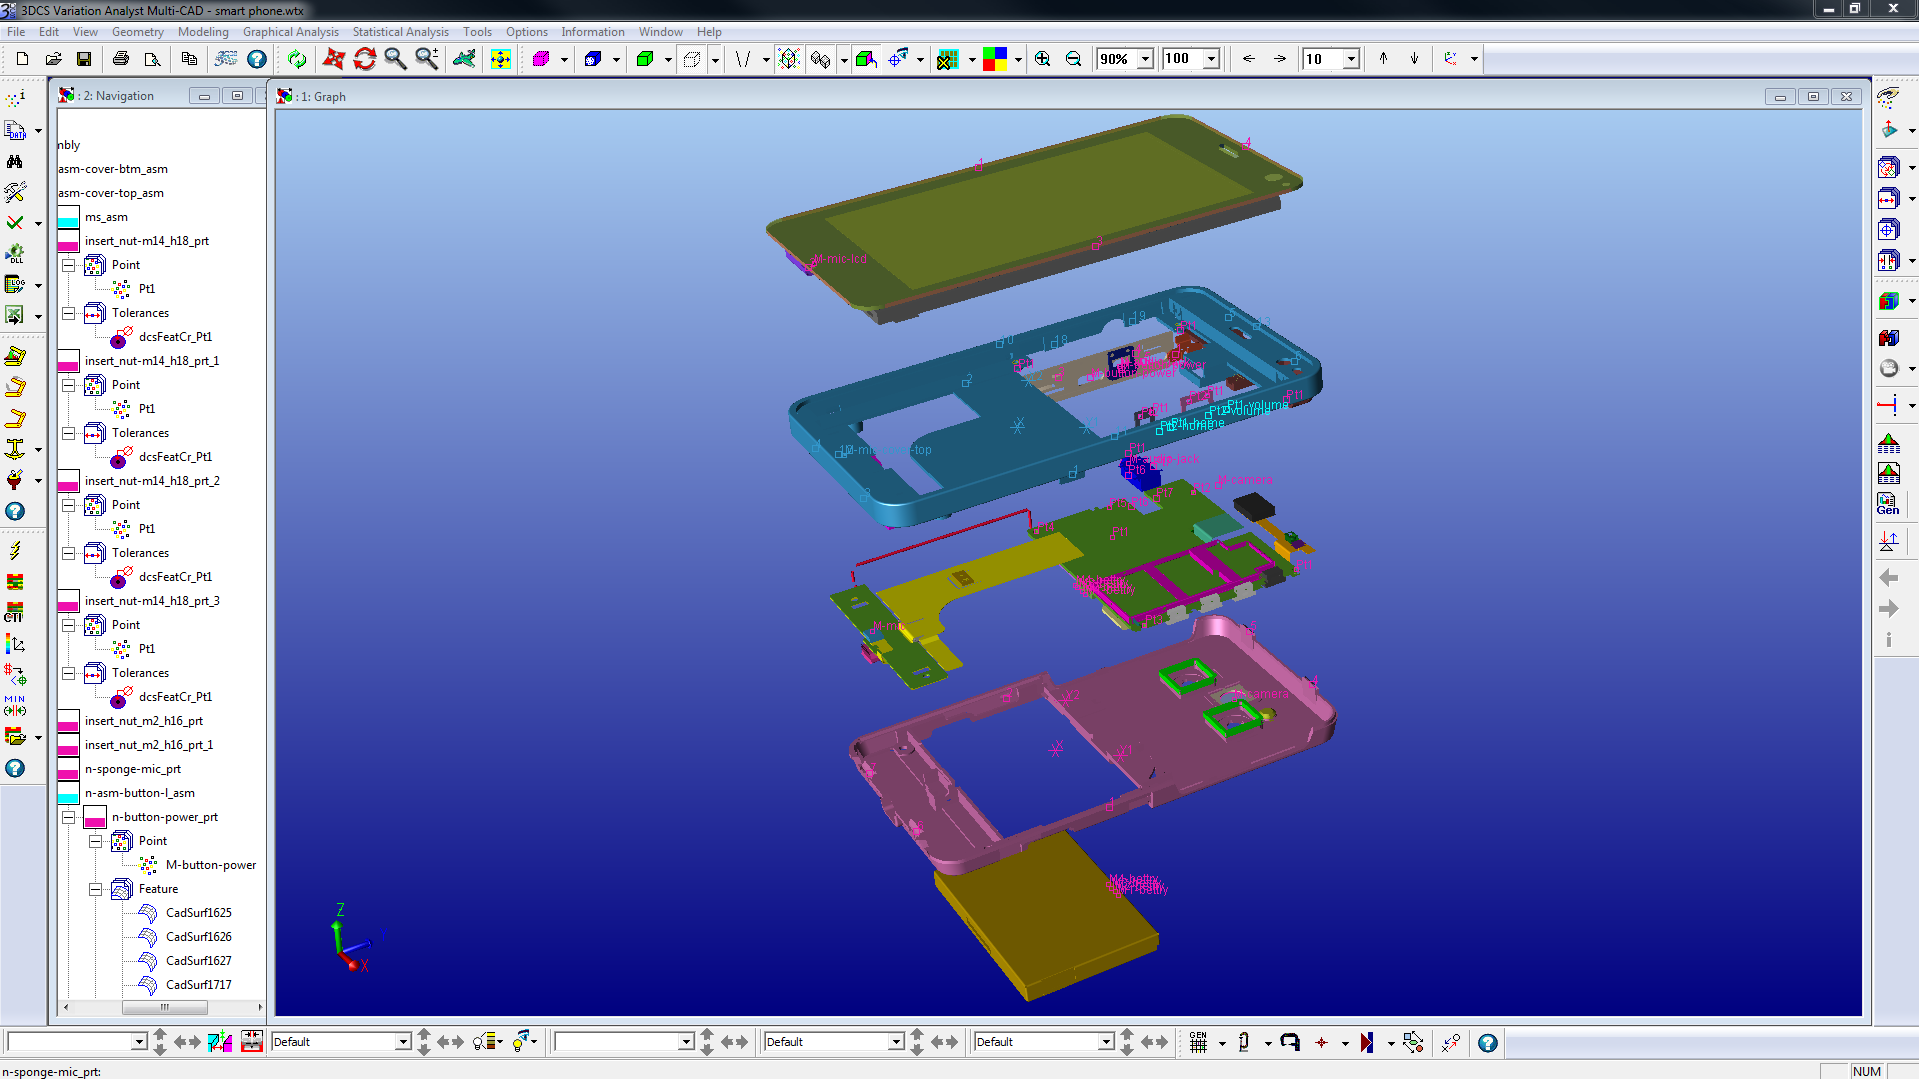 Simulate the assembly process